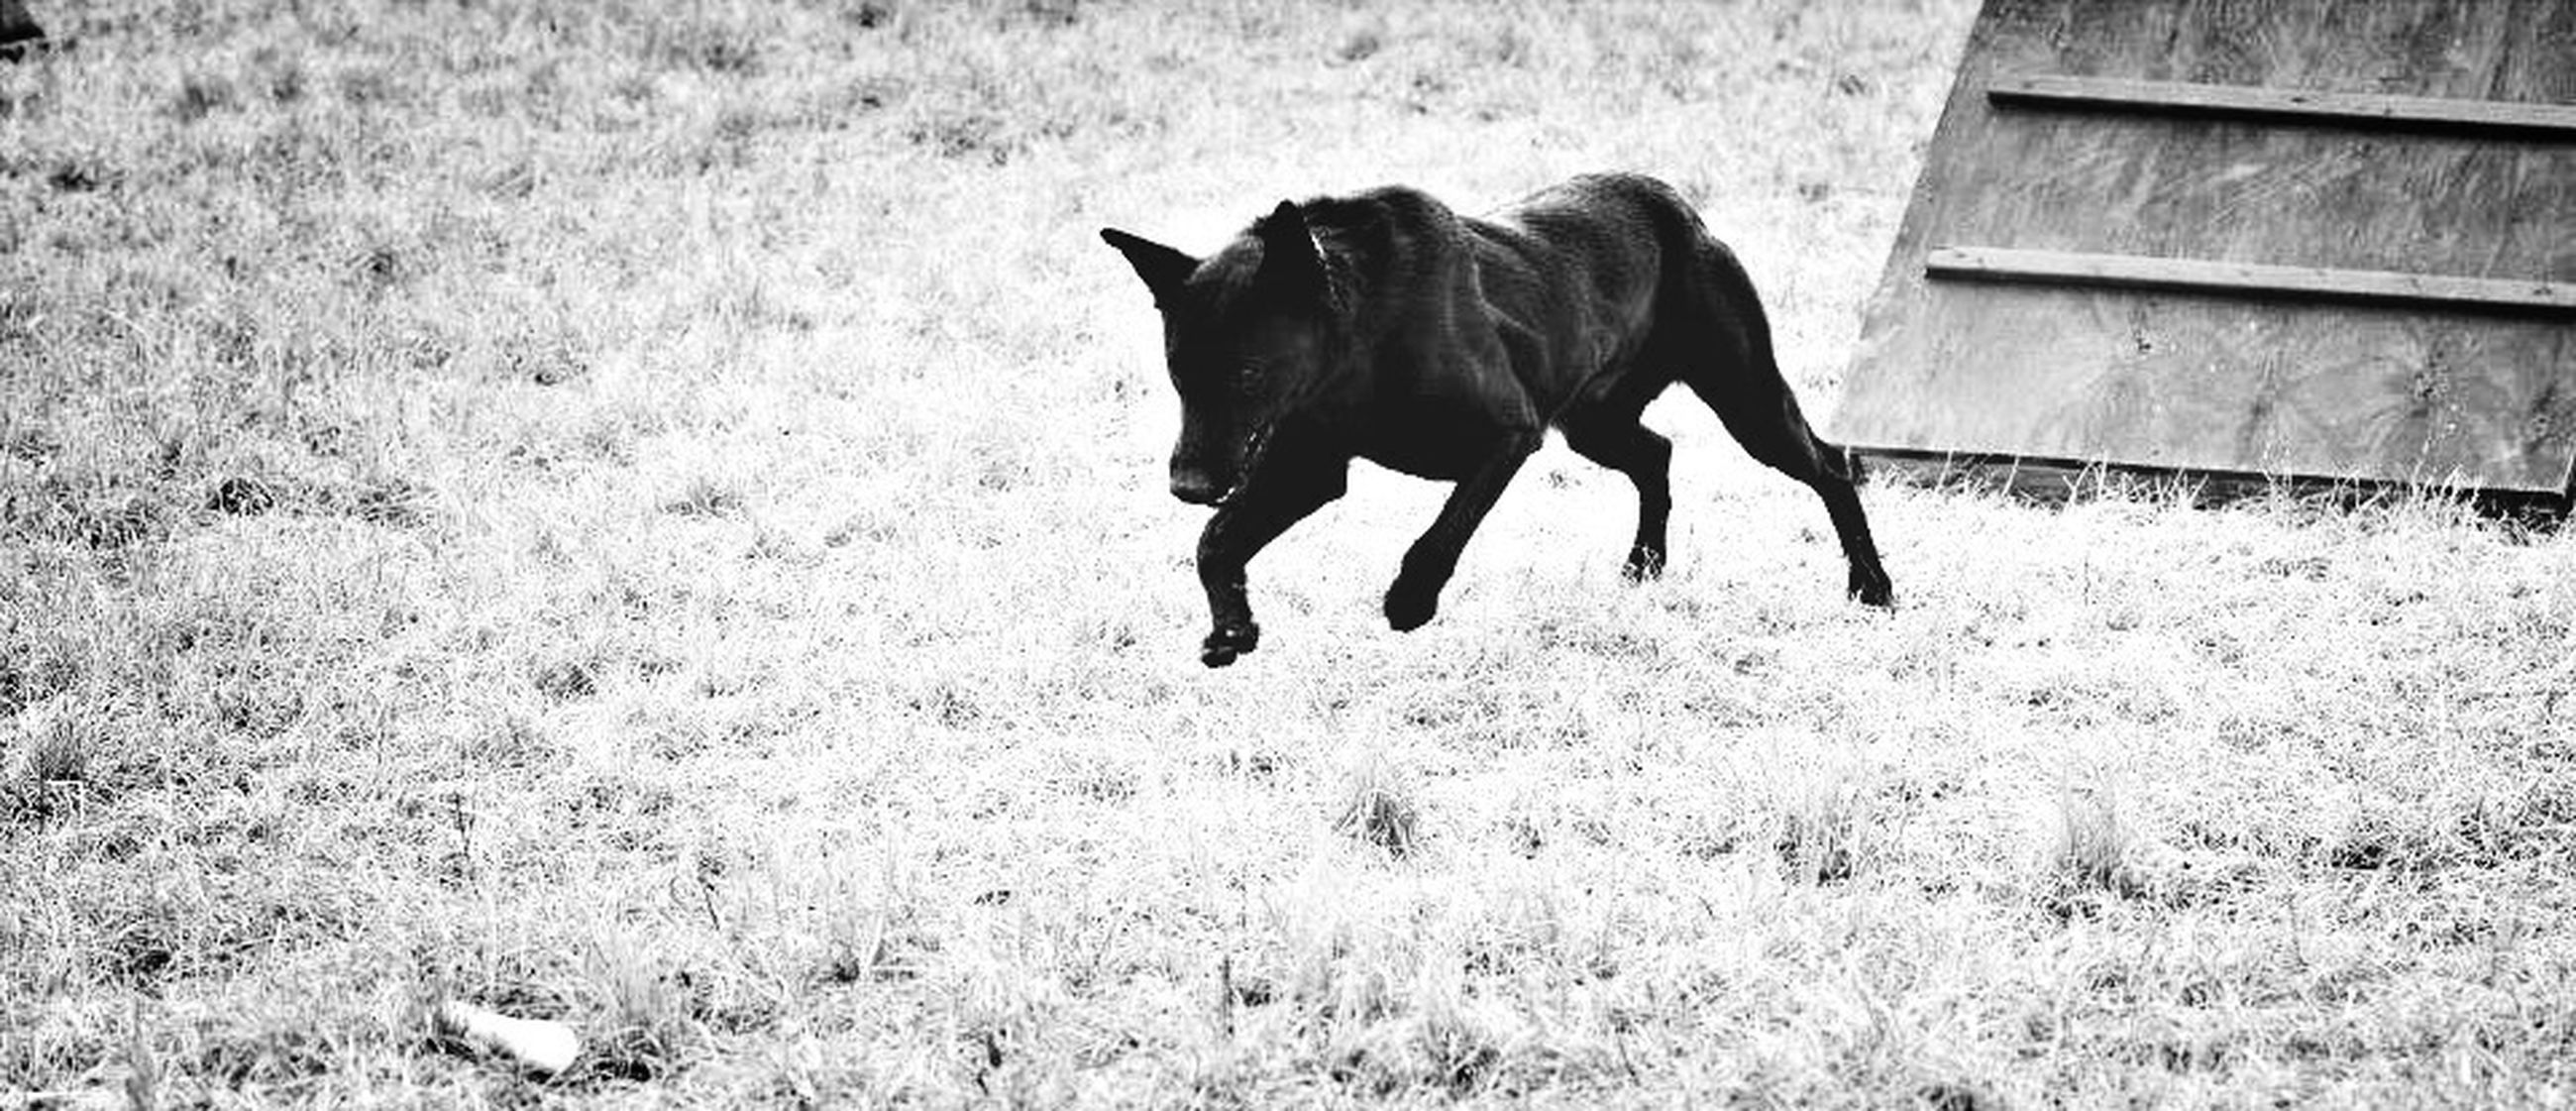 domestic animals, animal themes, one animal, mammal, pets, dog, field, grass, black color, full length, standing, side view, no people, day, outdoors, grassy, horse, animal, zoology, nature